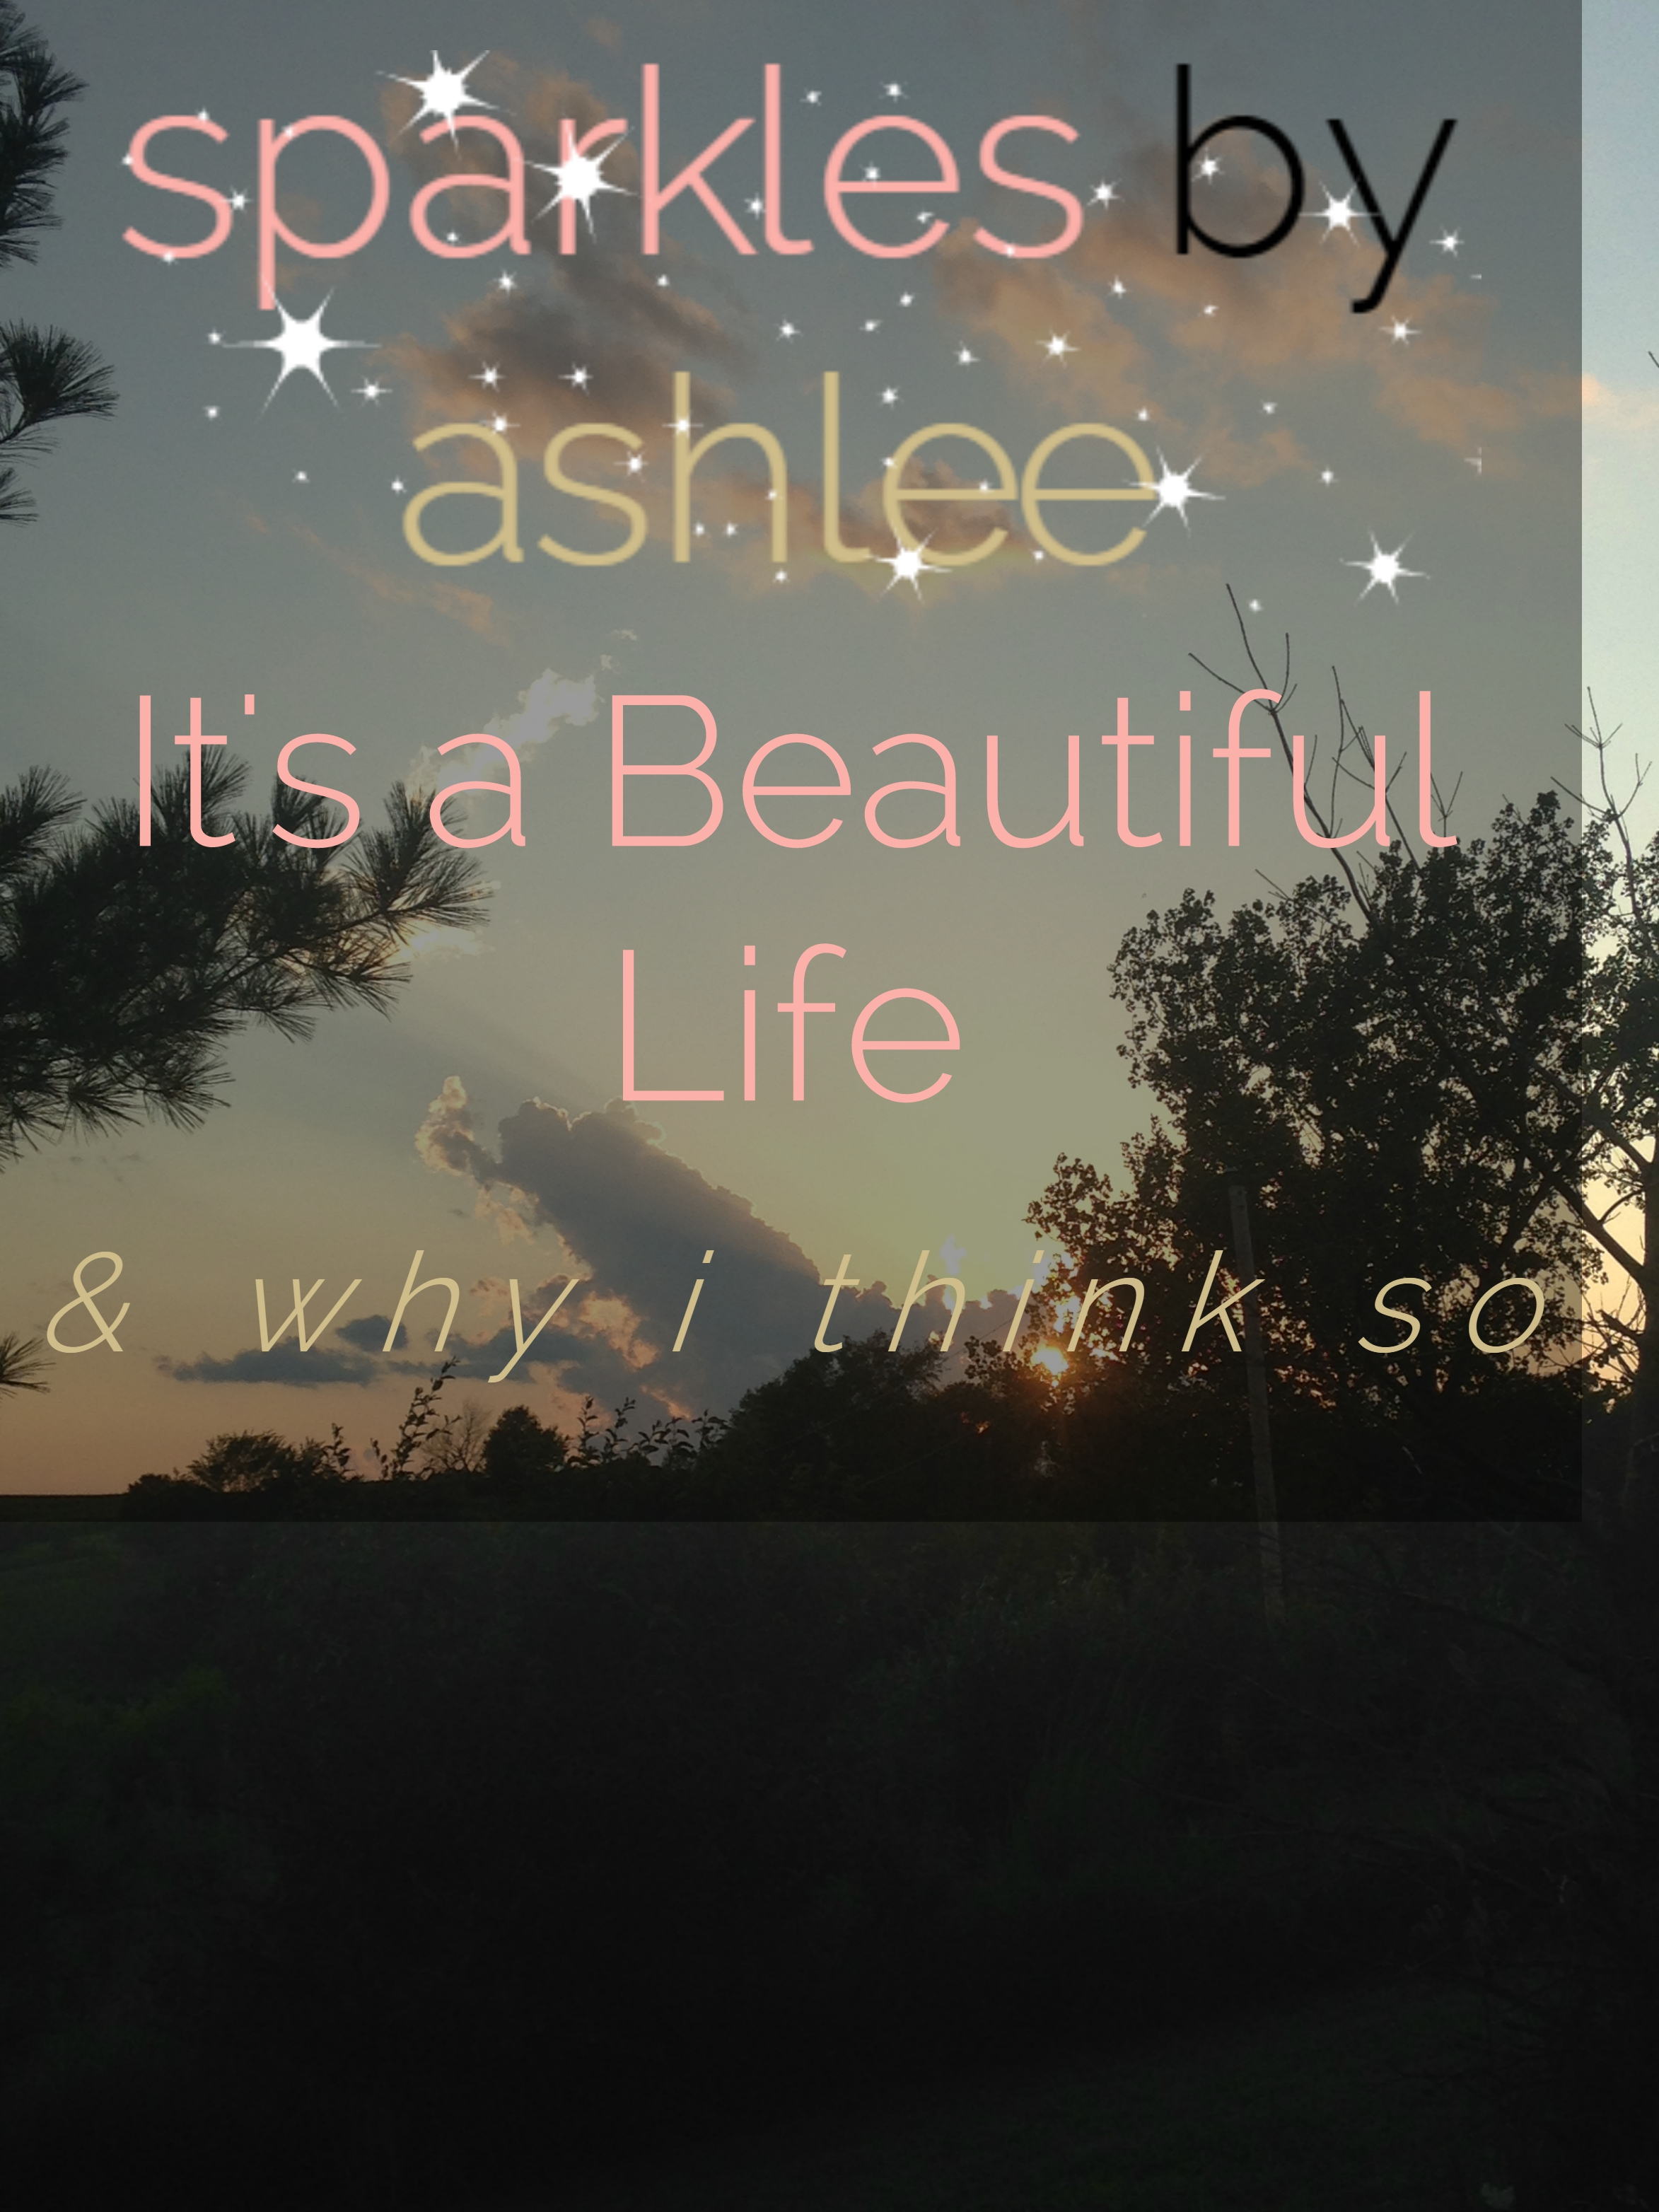 Its-a-Beautiful-Life-Sparkles-by-Ashlee.jpg